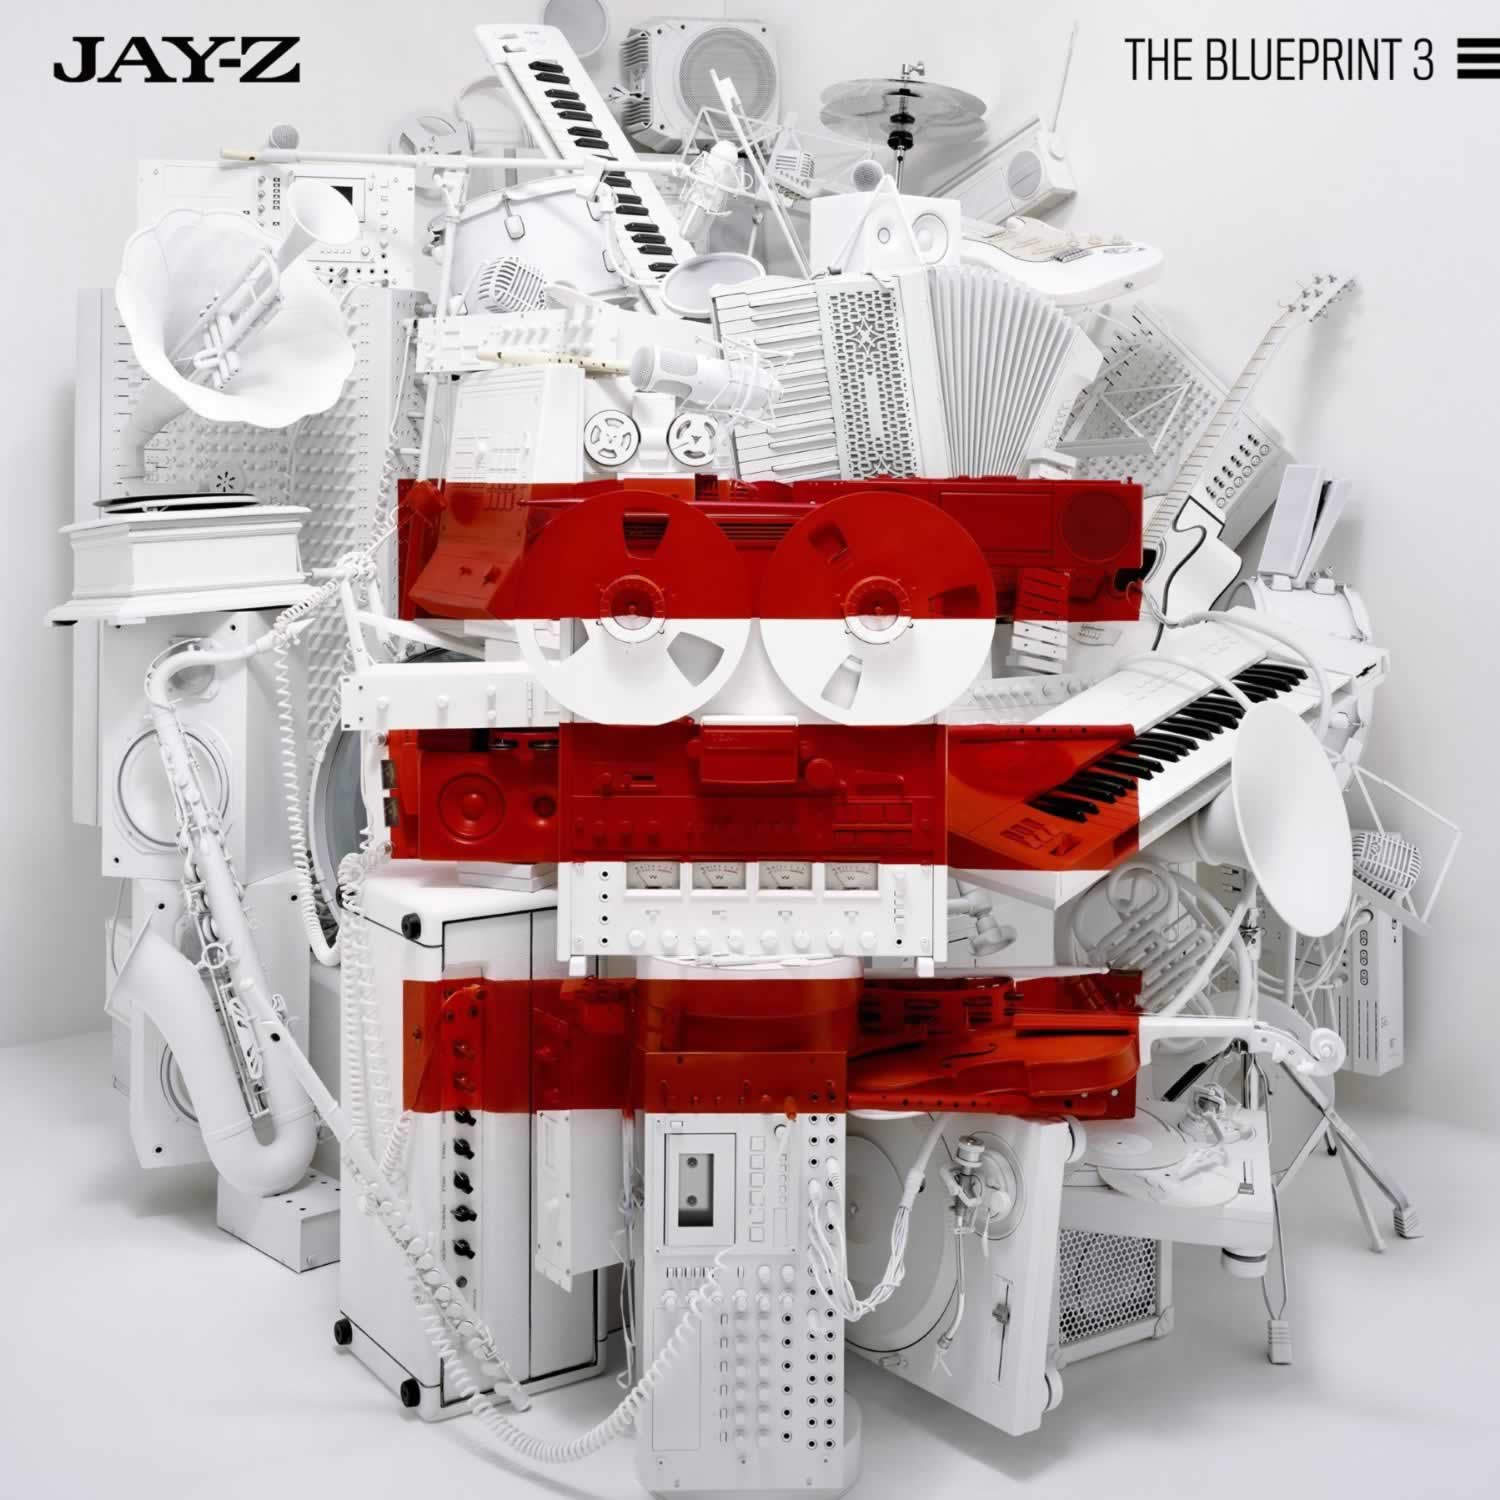 Artists record plant jay zthe blueprint 3 malvernweather Image collections